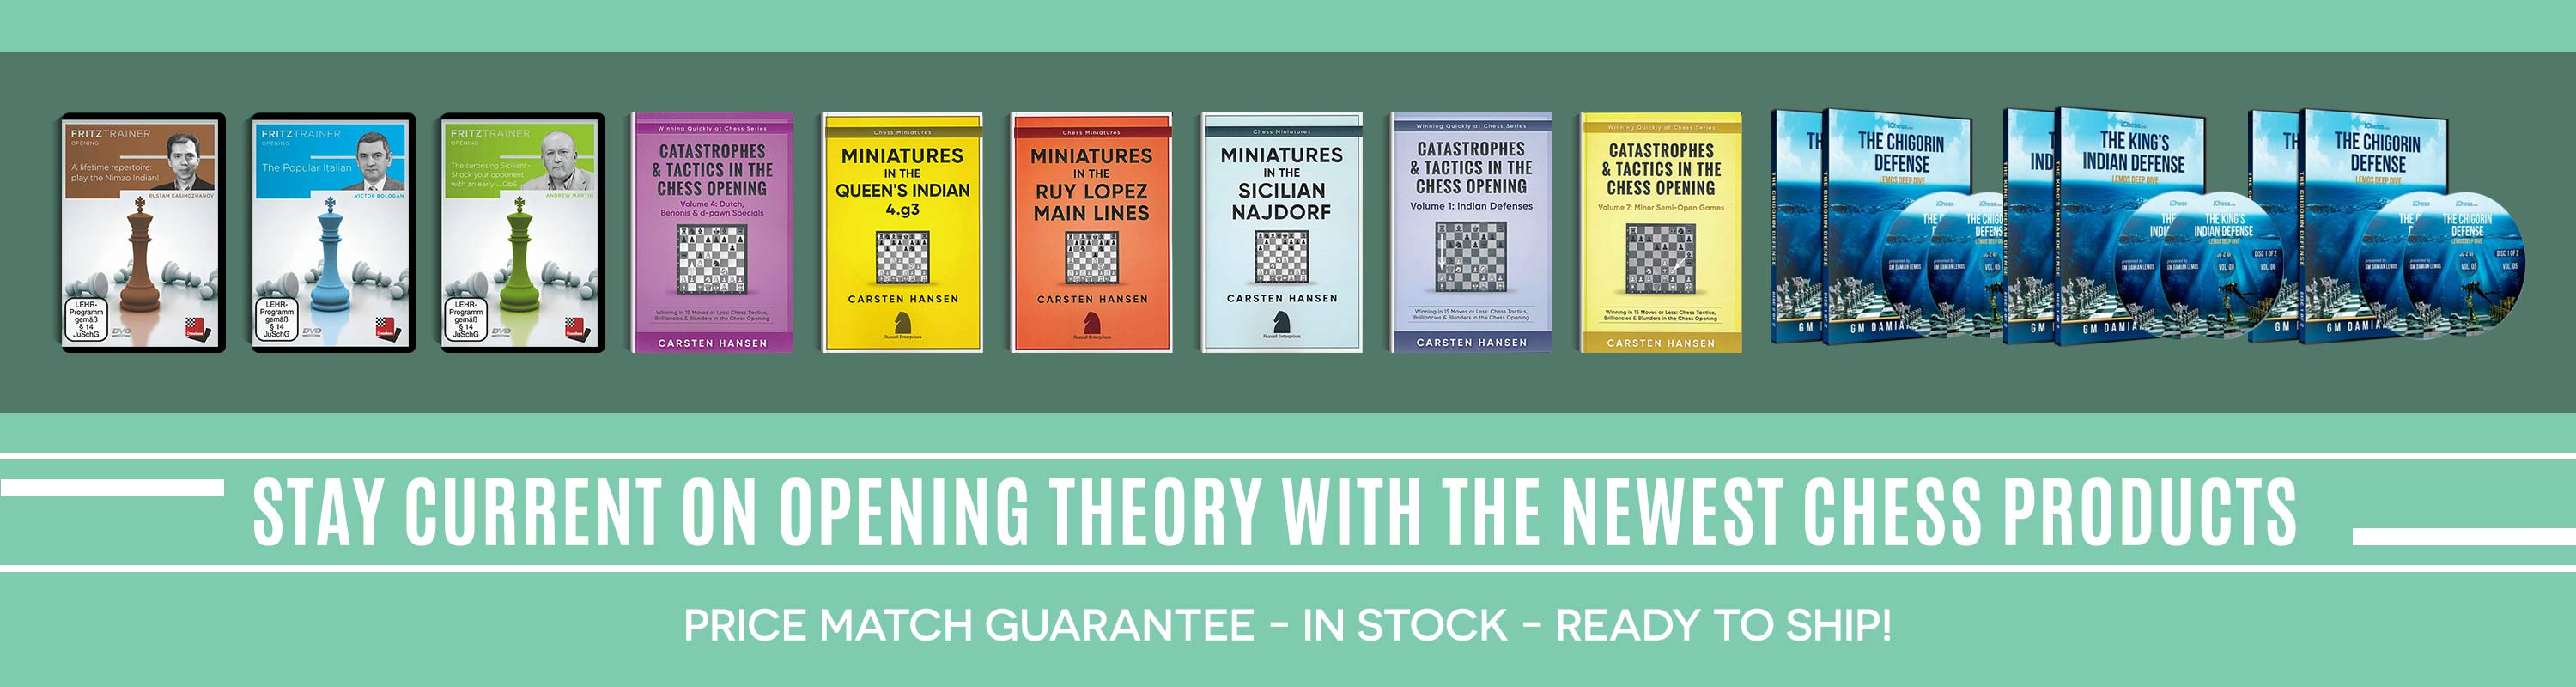 Stay current on Opening Theory with the newest Chess Products!